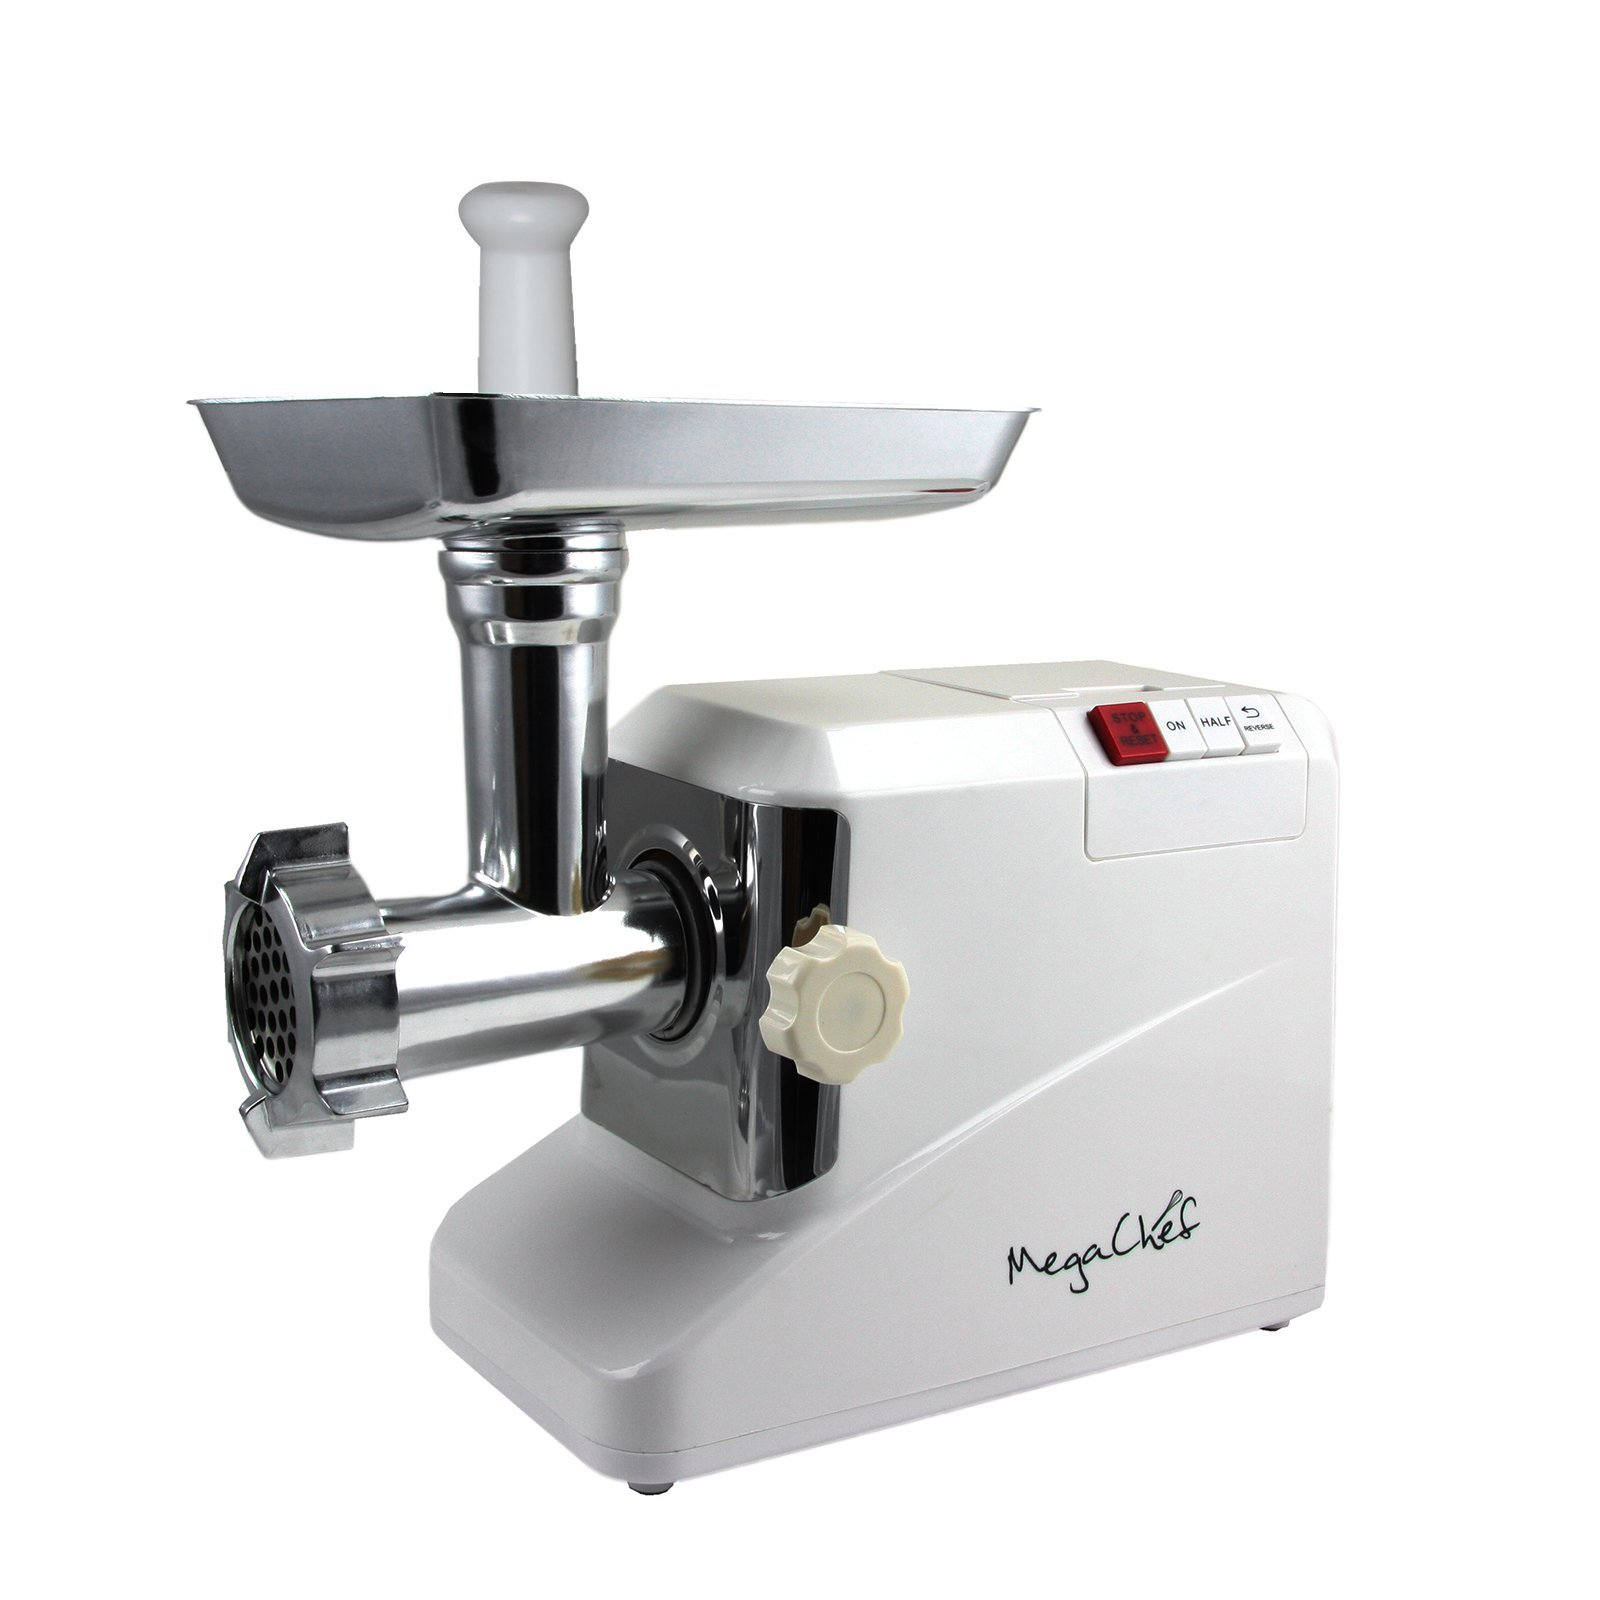 Megachef 1800W Automatic Meat Grinder for Household Use